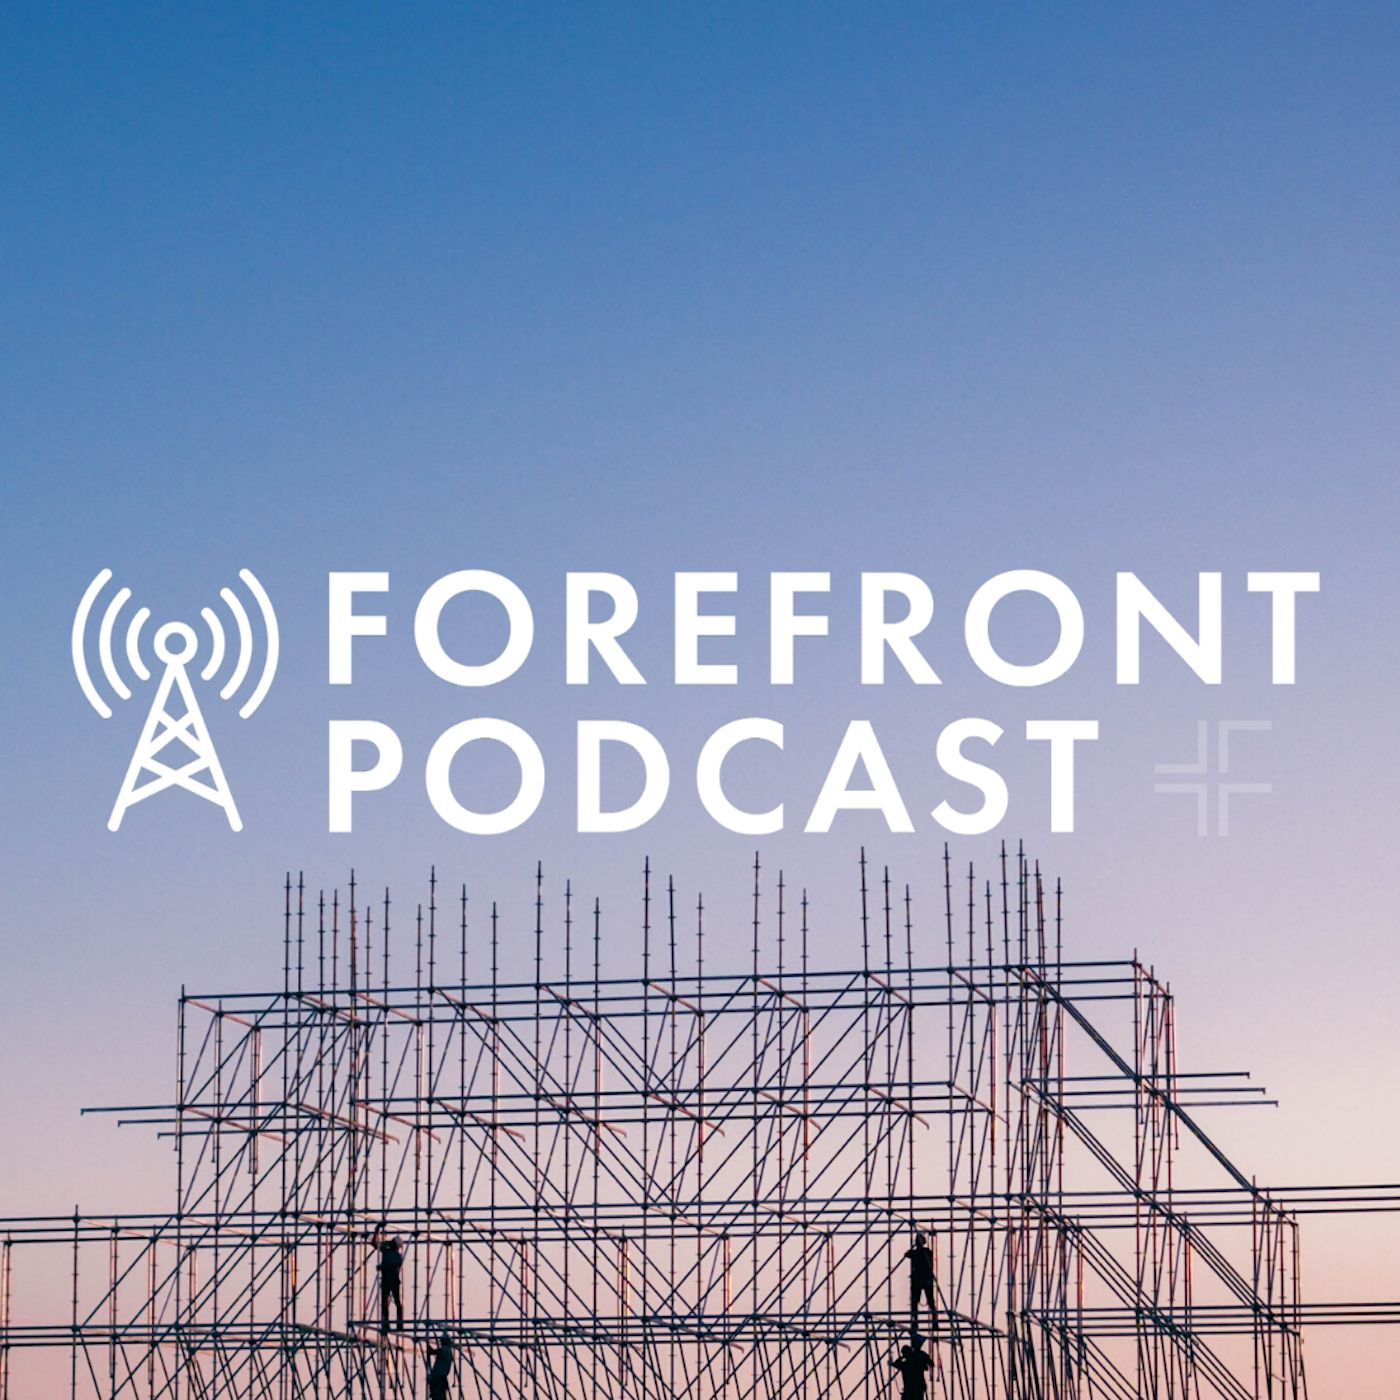 Forefront Podcast